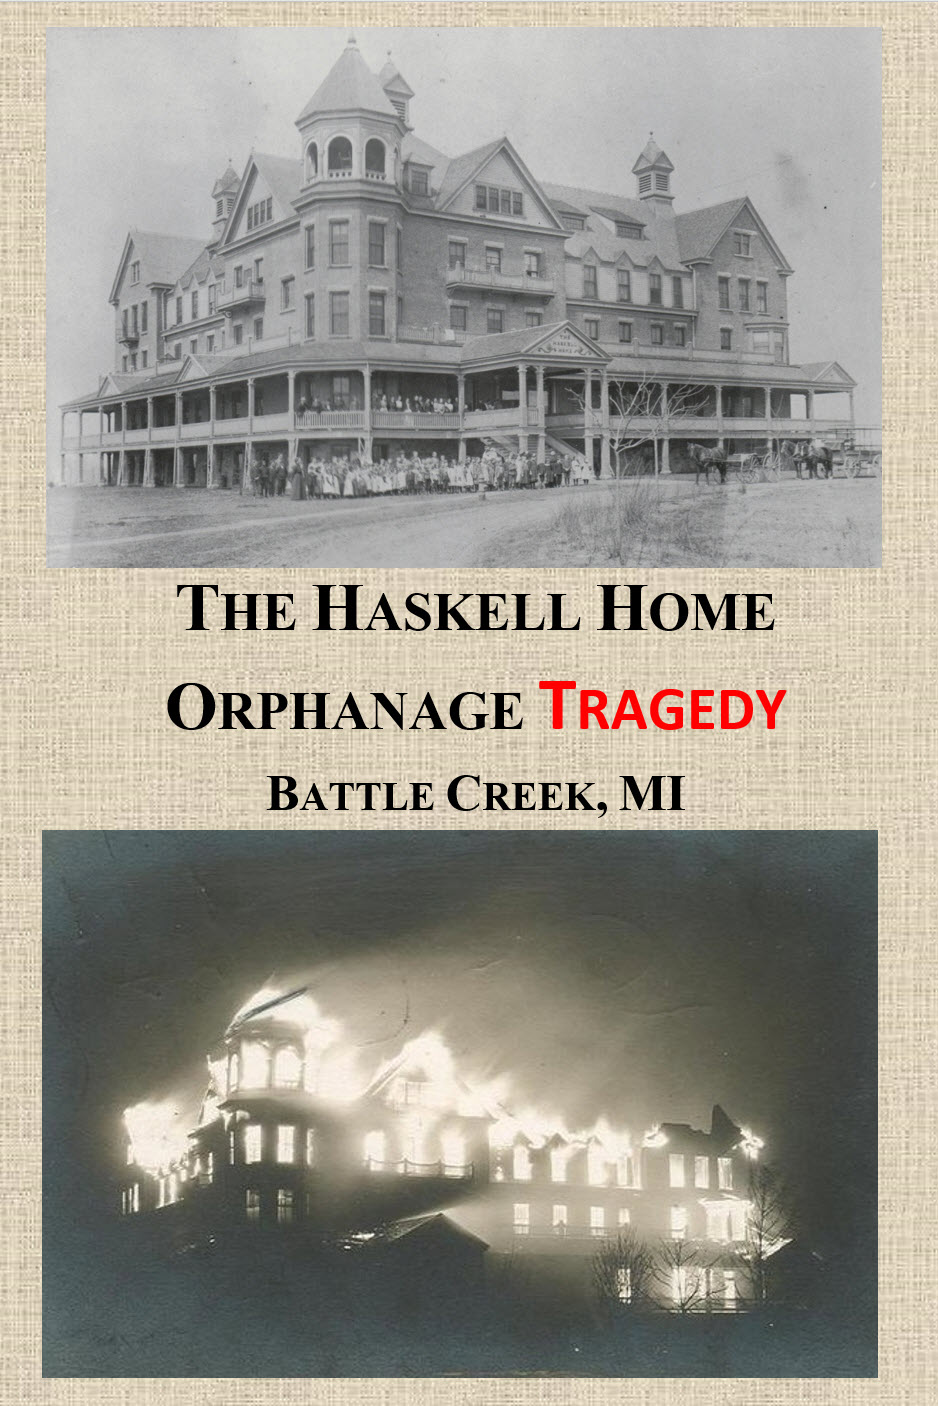 The Haskell Home Orphanage Tragedy